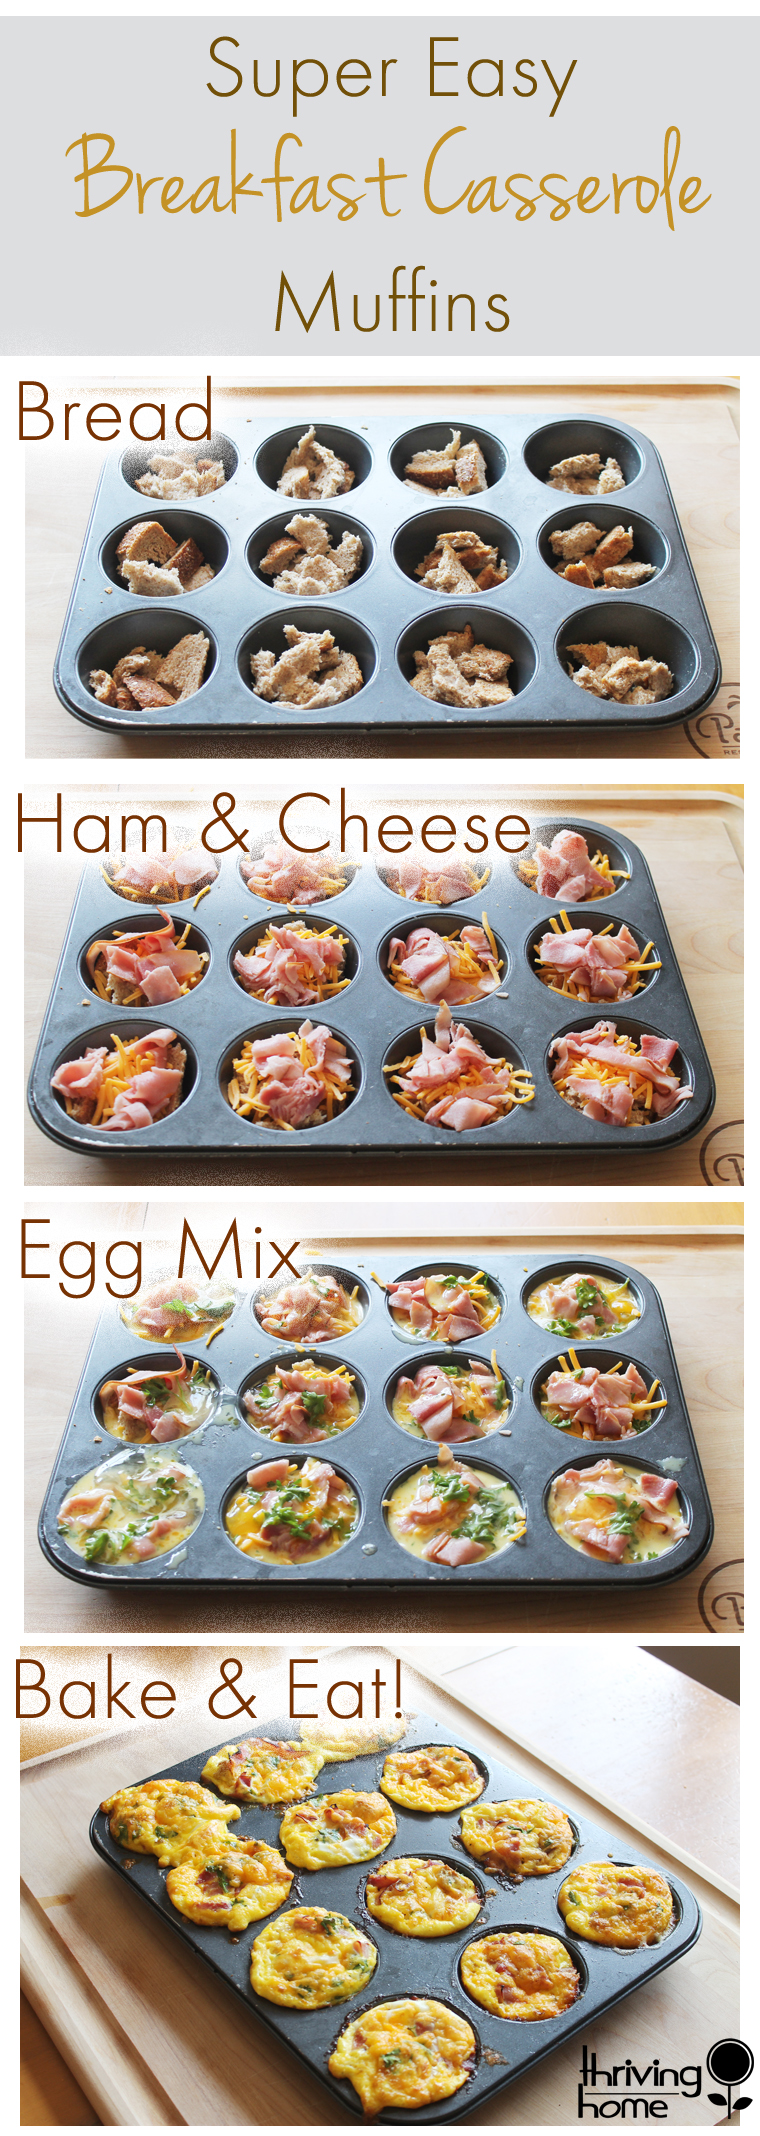 Step by step images on how to make breakfast casserole muffins